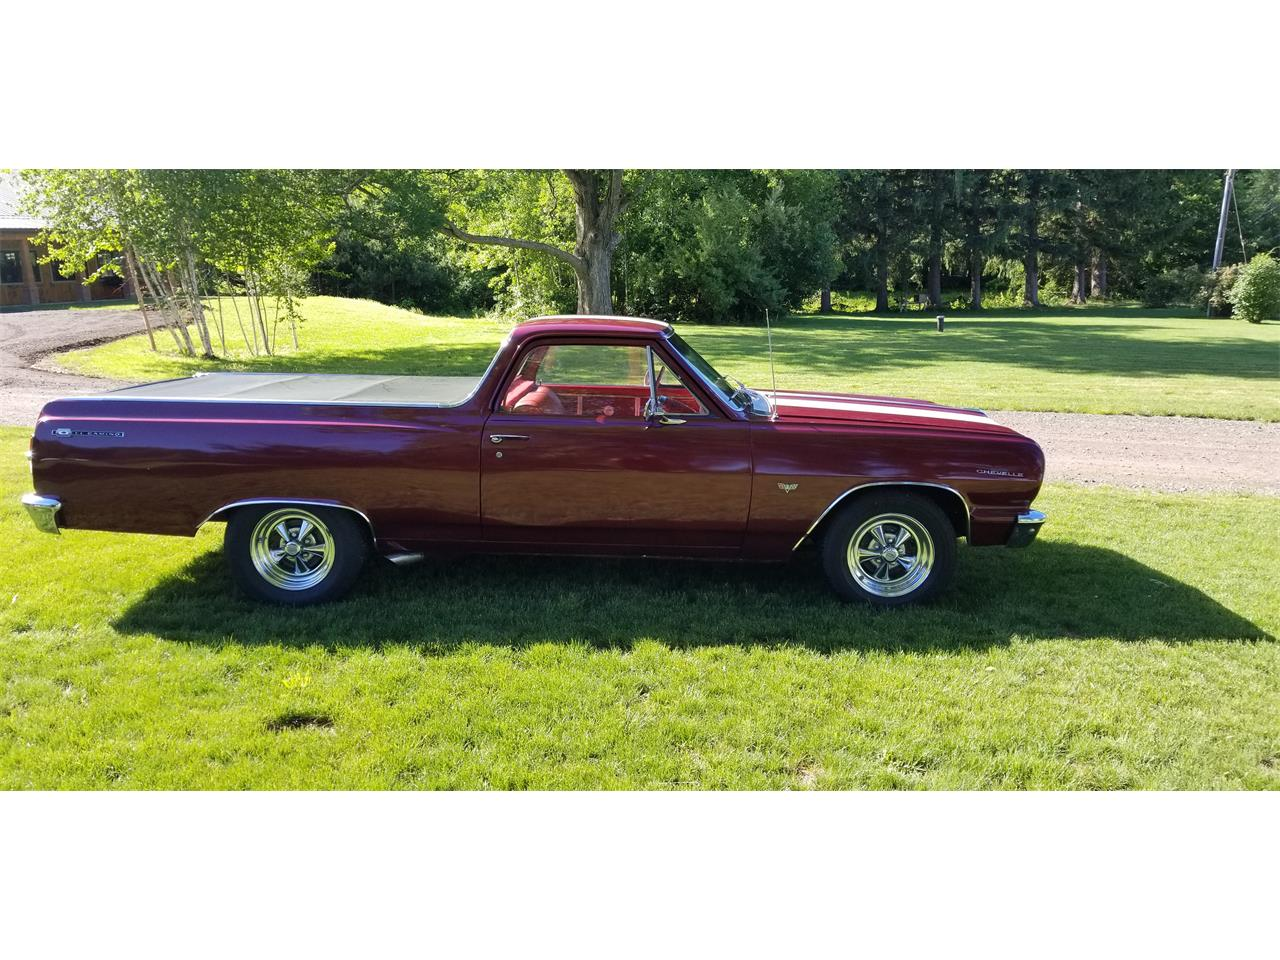 1964 Chevrolet El Camino SS (CC-1101678) for sale in Ellington, Connecticut